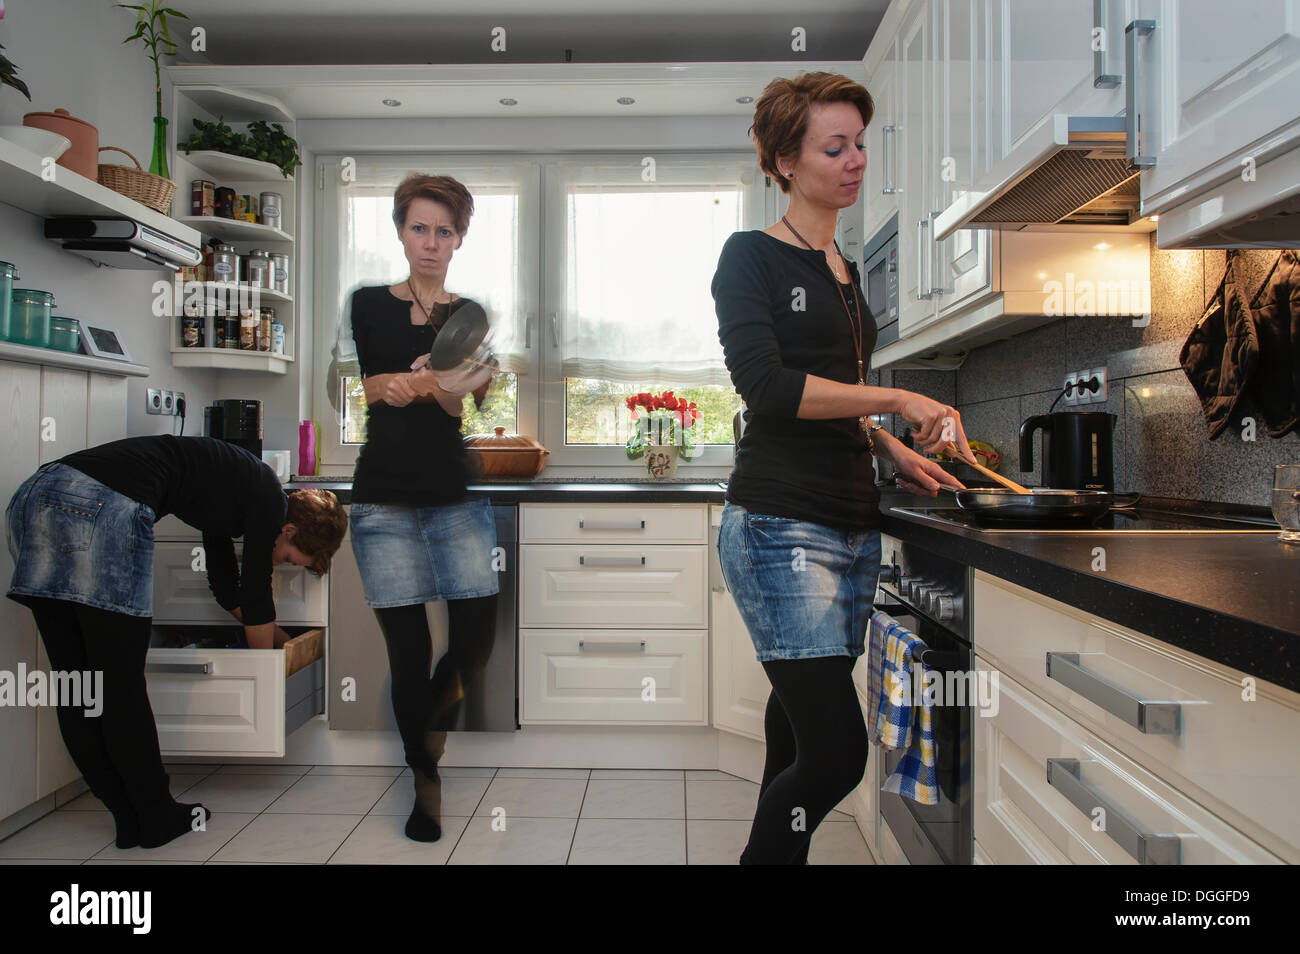 Young woman, depicted three times in the kitchen, Grevenbroich, North Rhine-Westphalia - Stock Image